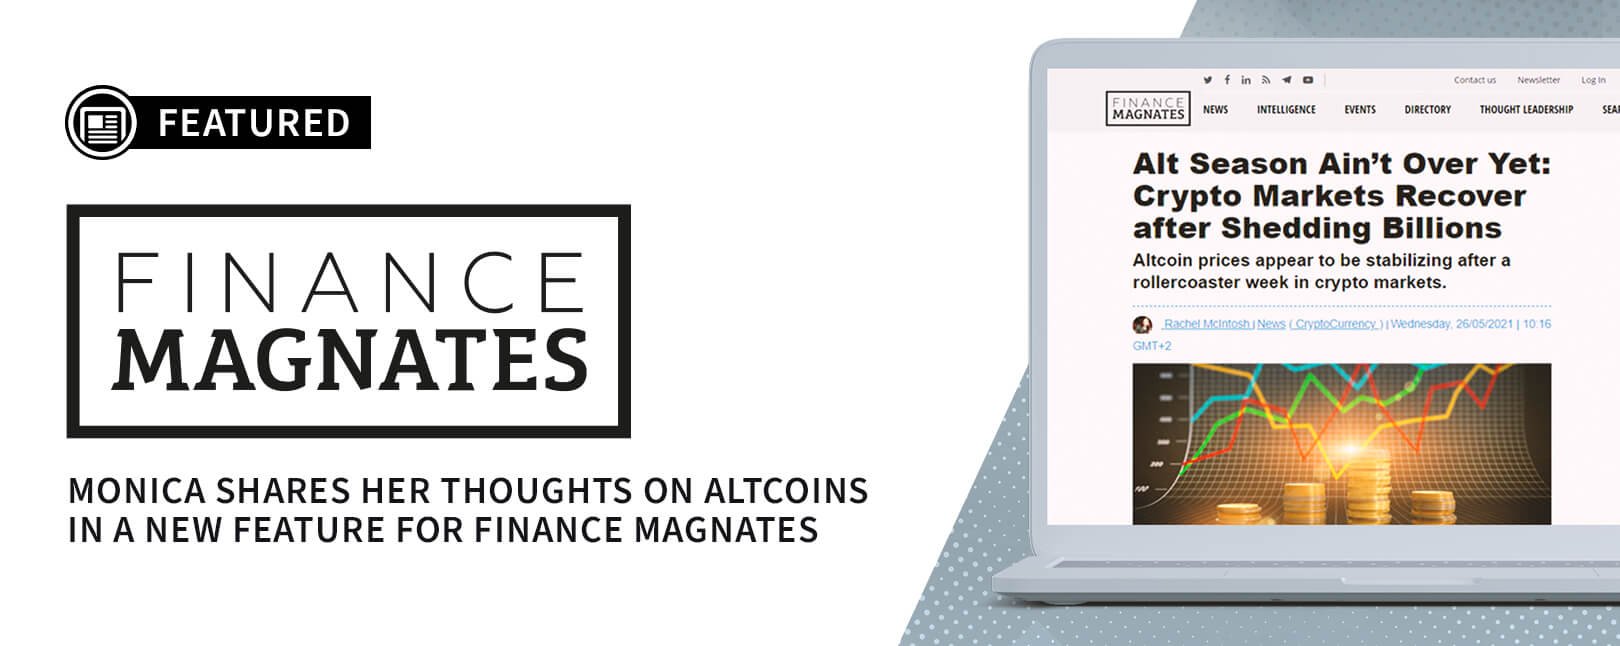 Chargebacks911® COO Comments on Altcoins for Finance Magnates